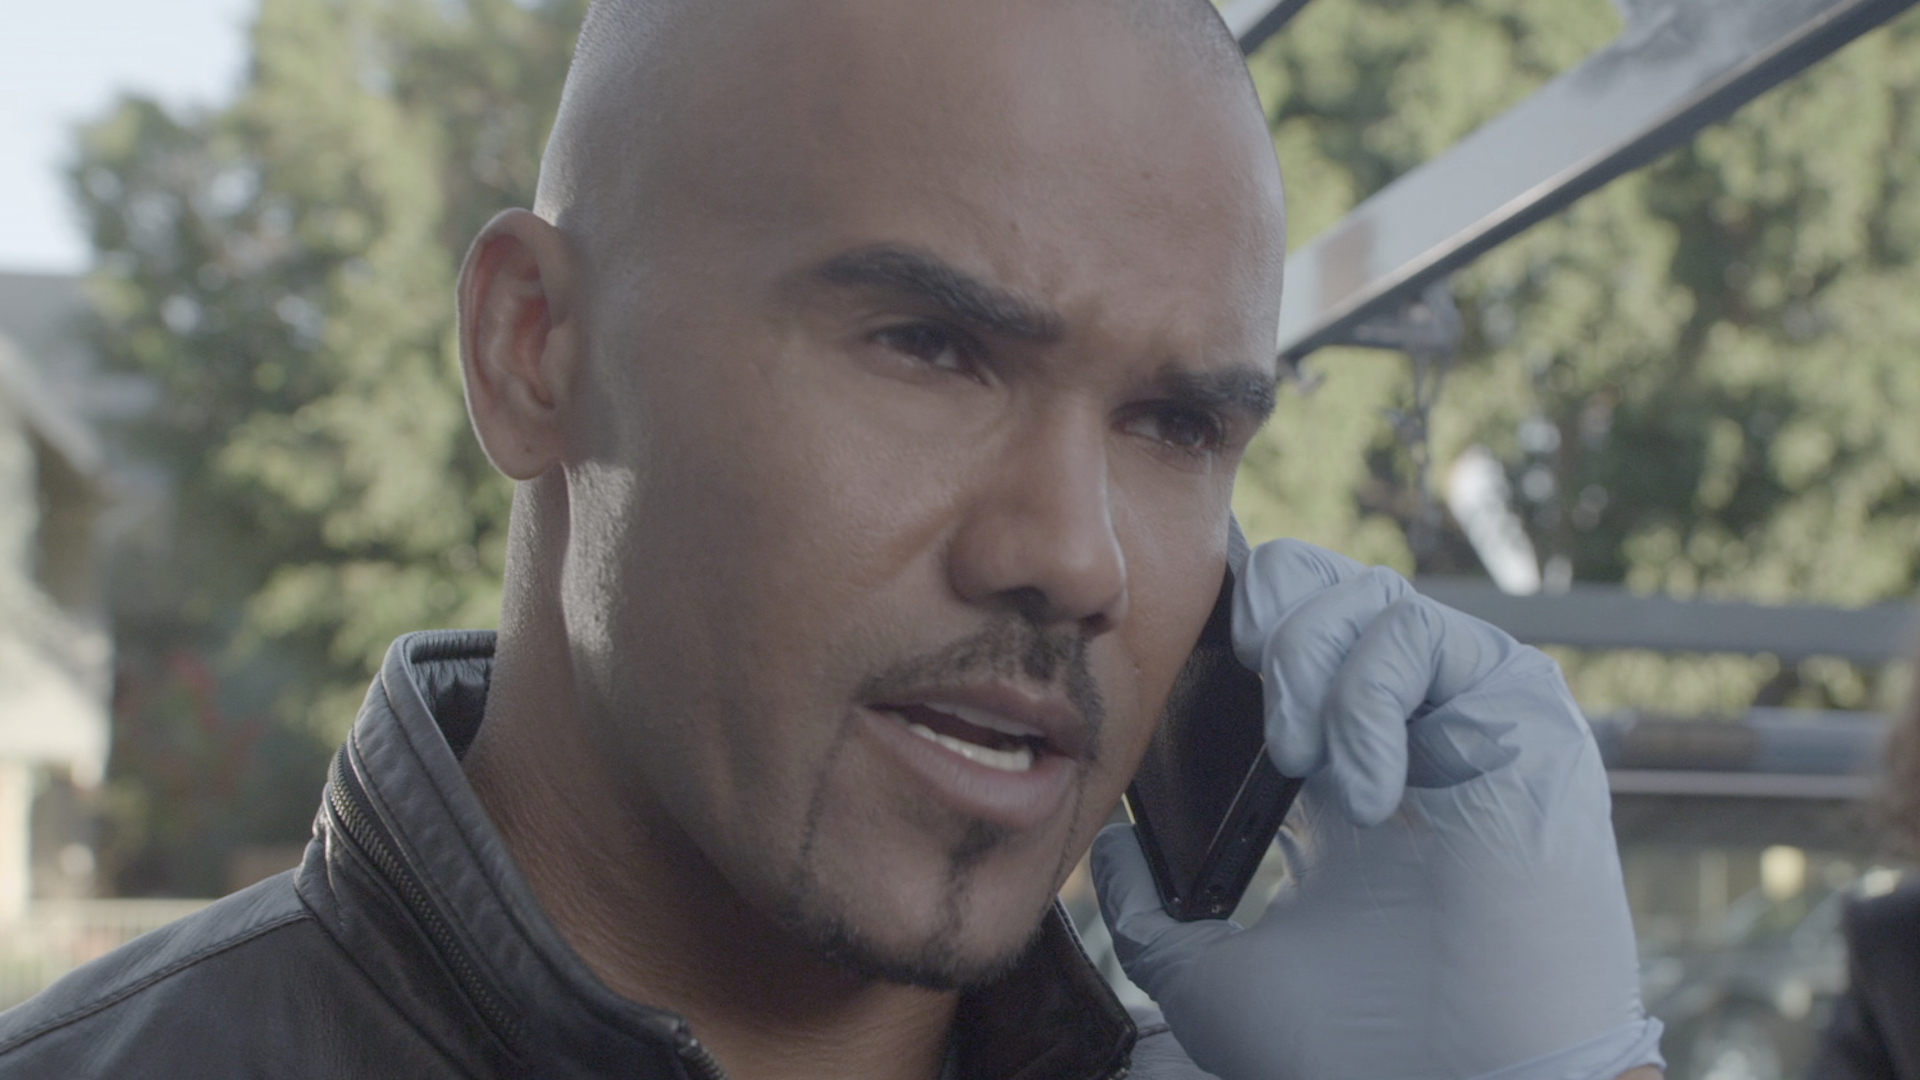 Criminal Minds: Morgan saves the day just before a murderer was about to behead his victim.